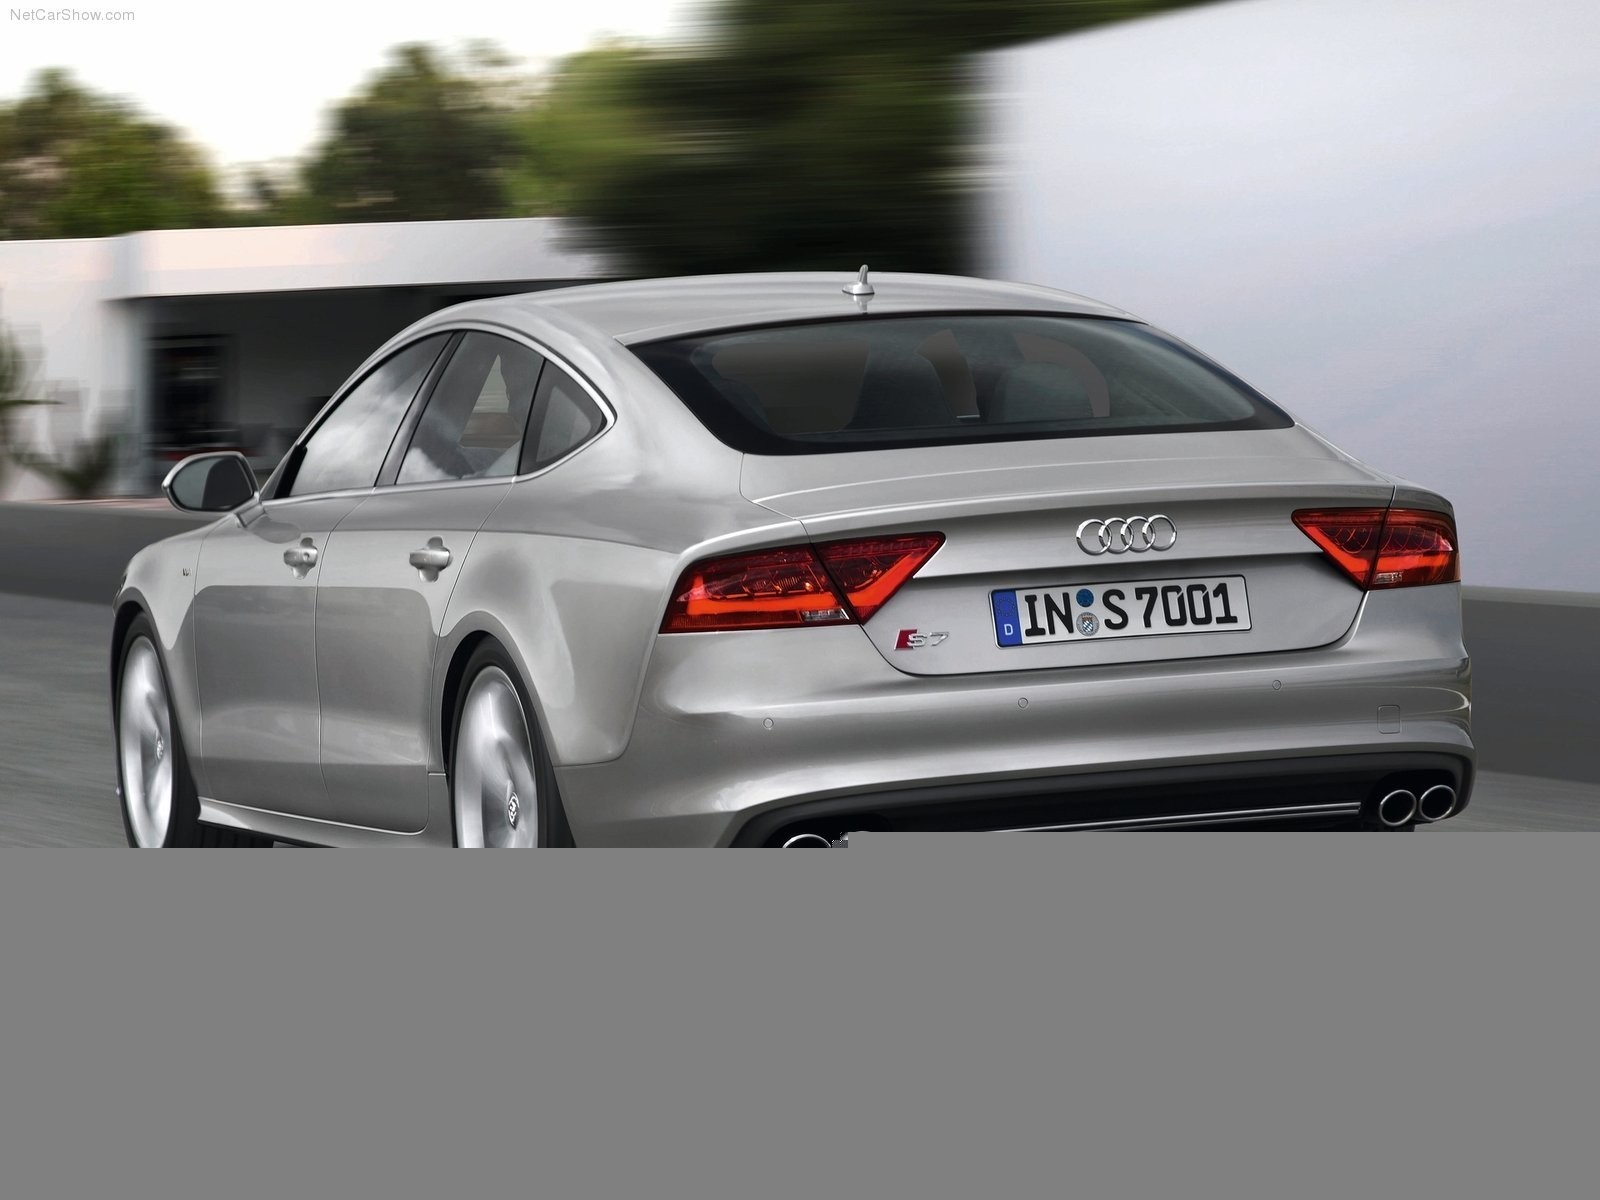 cars Audi Audi S7 HD Wallpaper